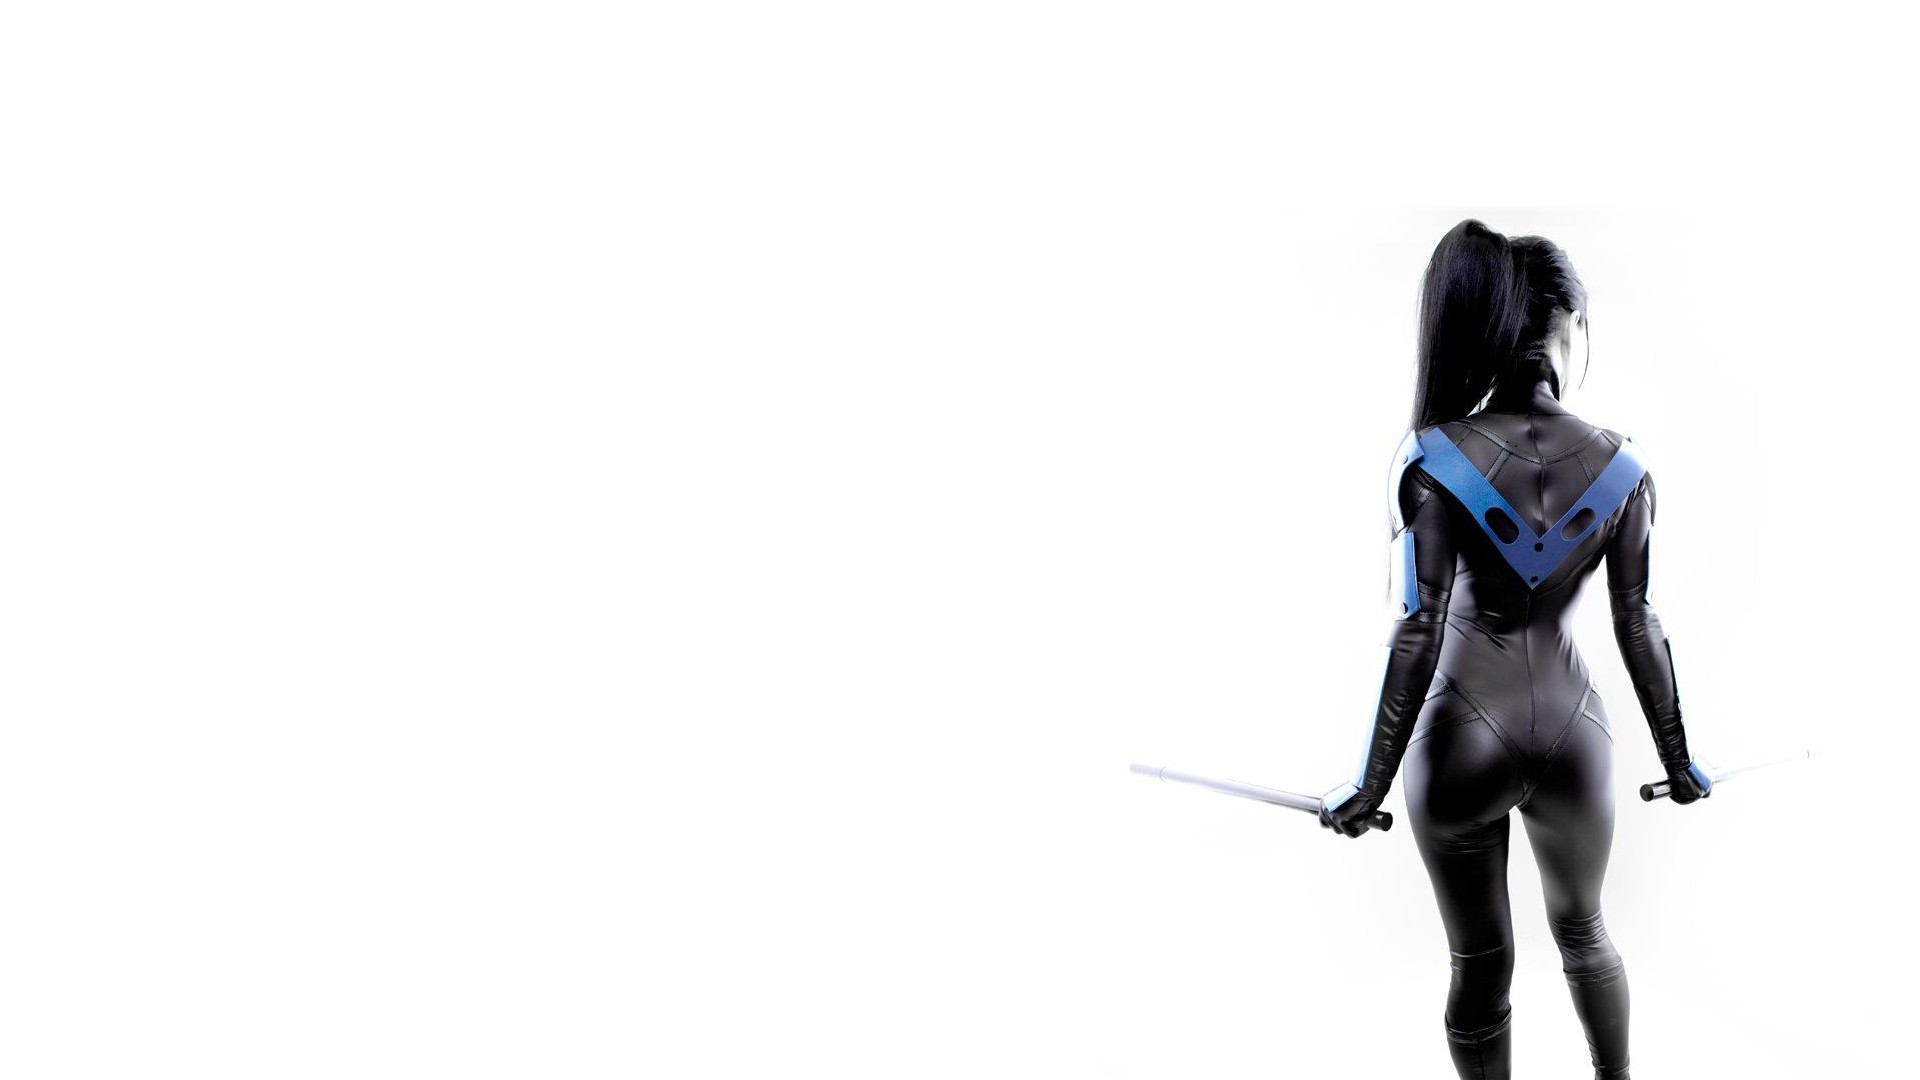 1920x1080 White Brunette Nightwing Batman Sword Cosplay wallpaper